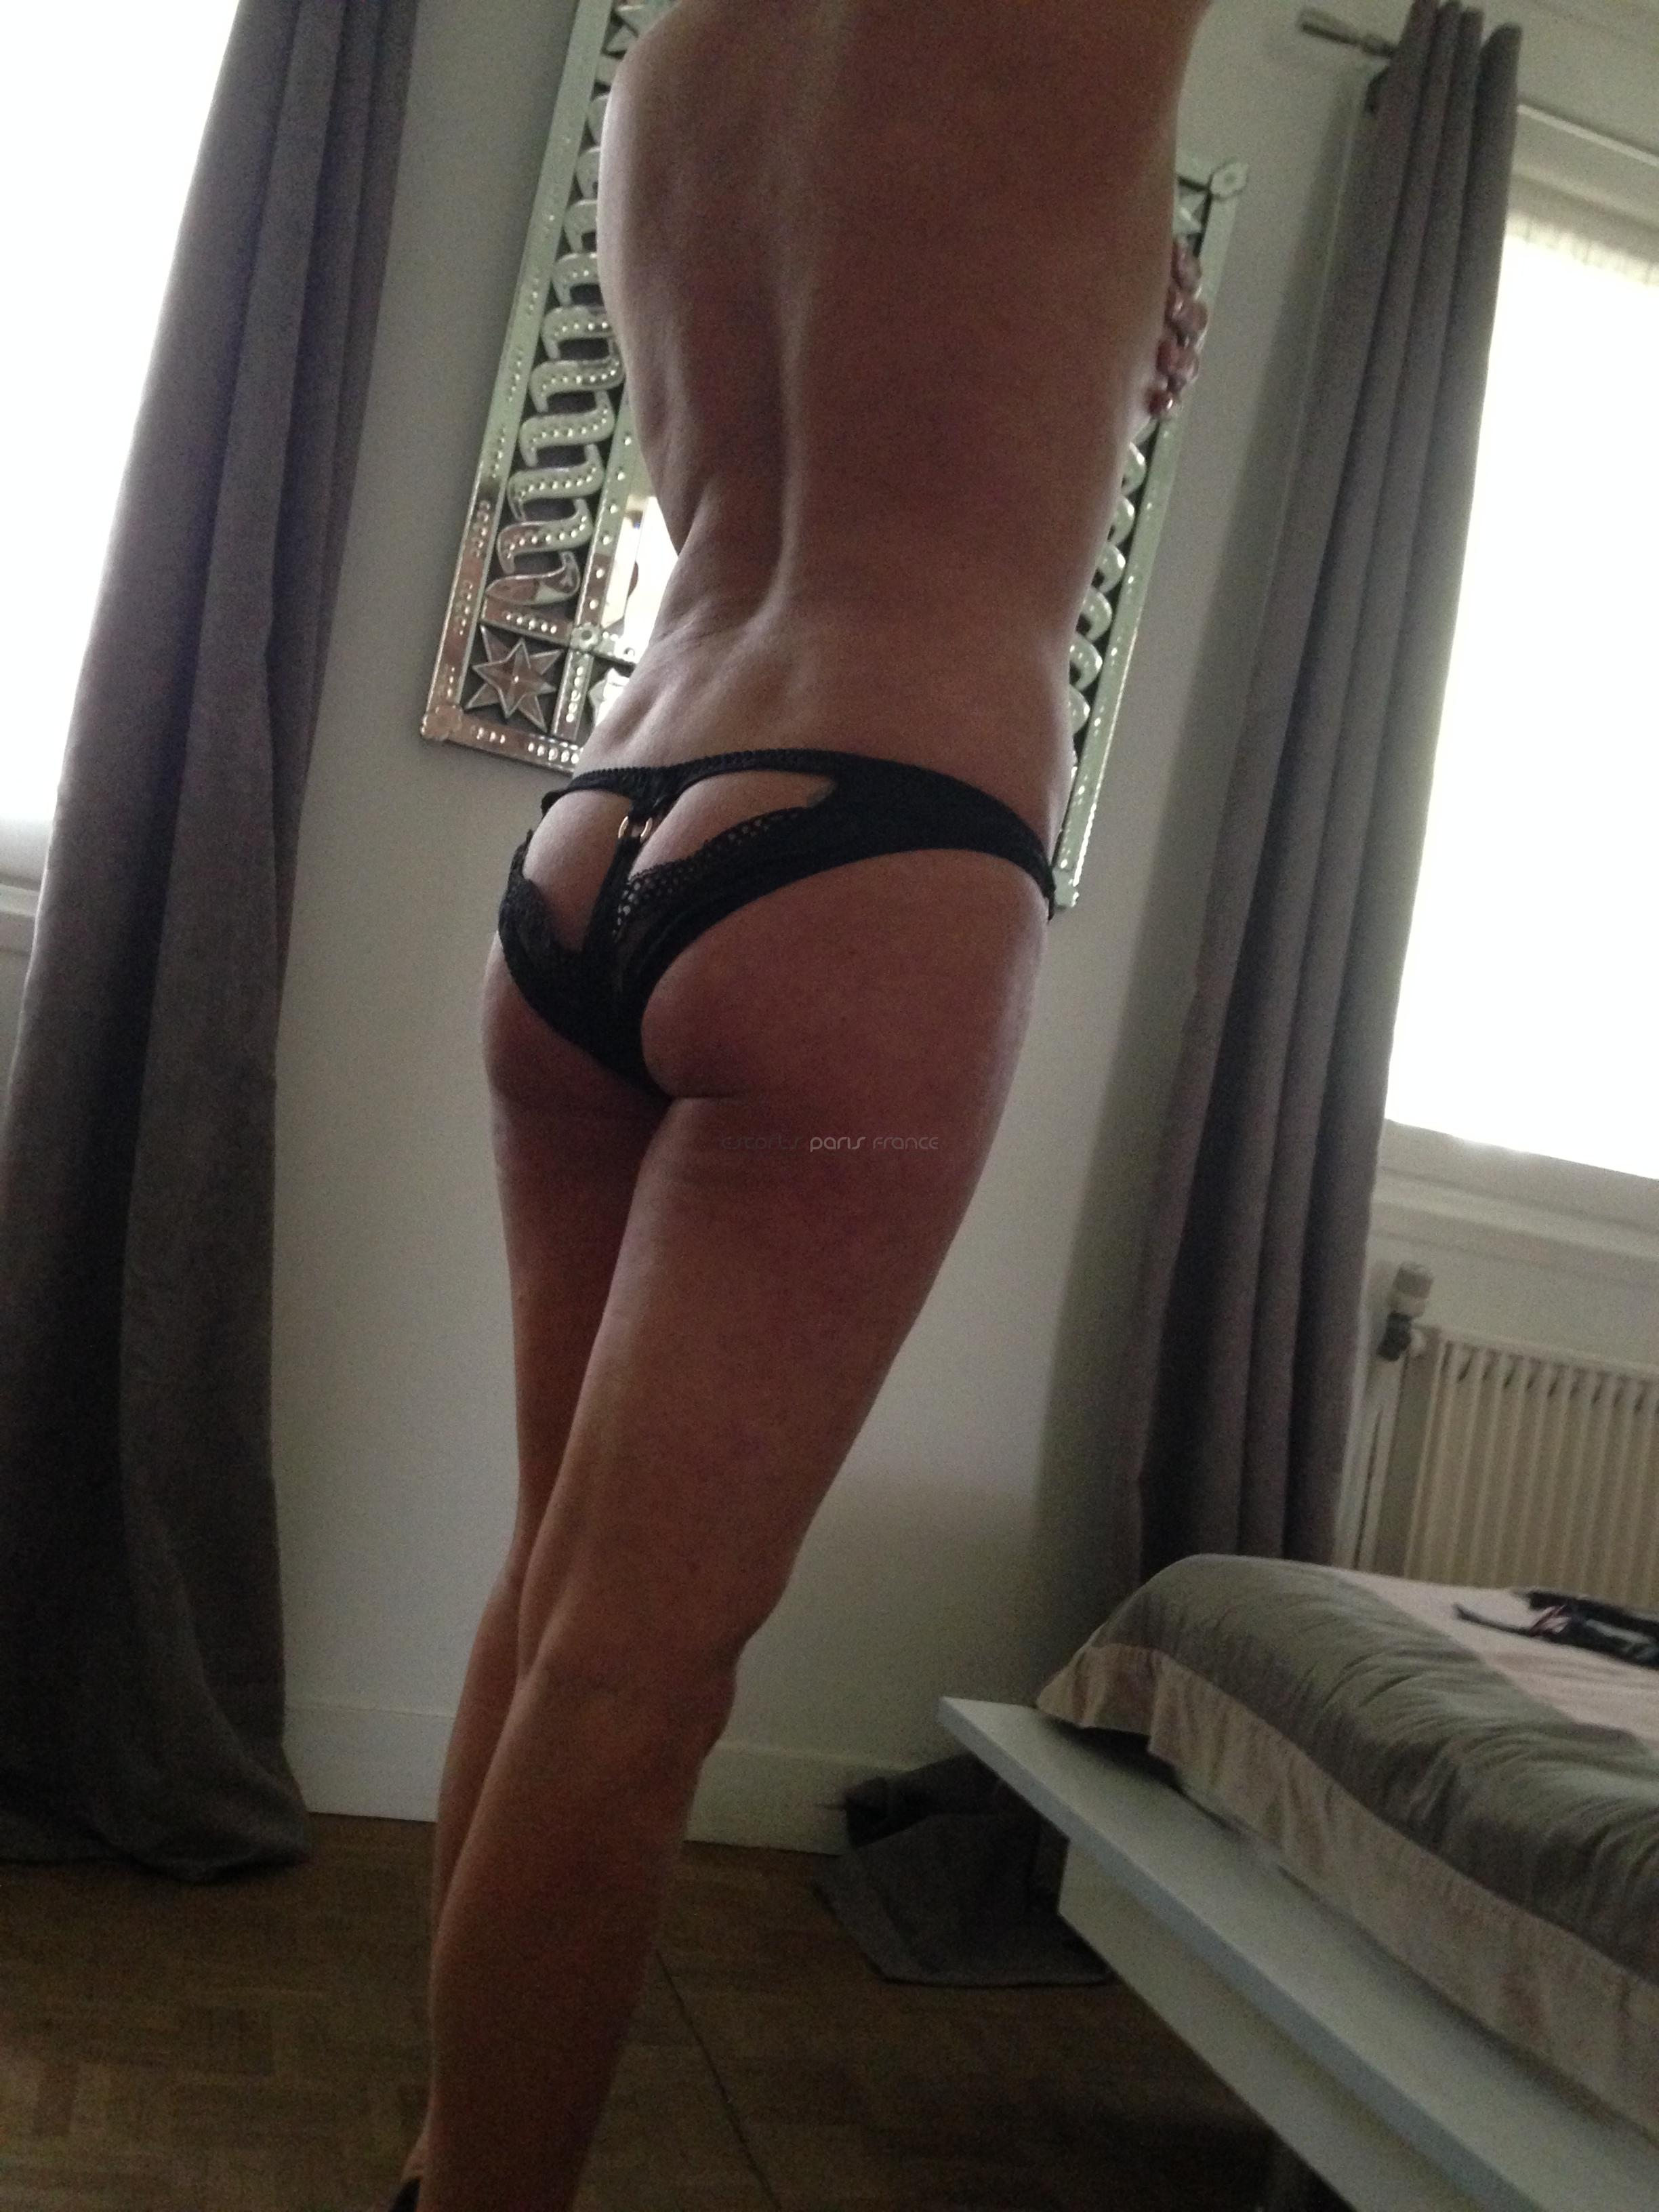 Video Sexe En Francais Escort Fontenay